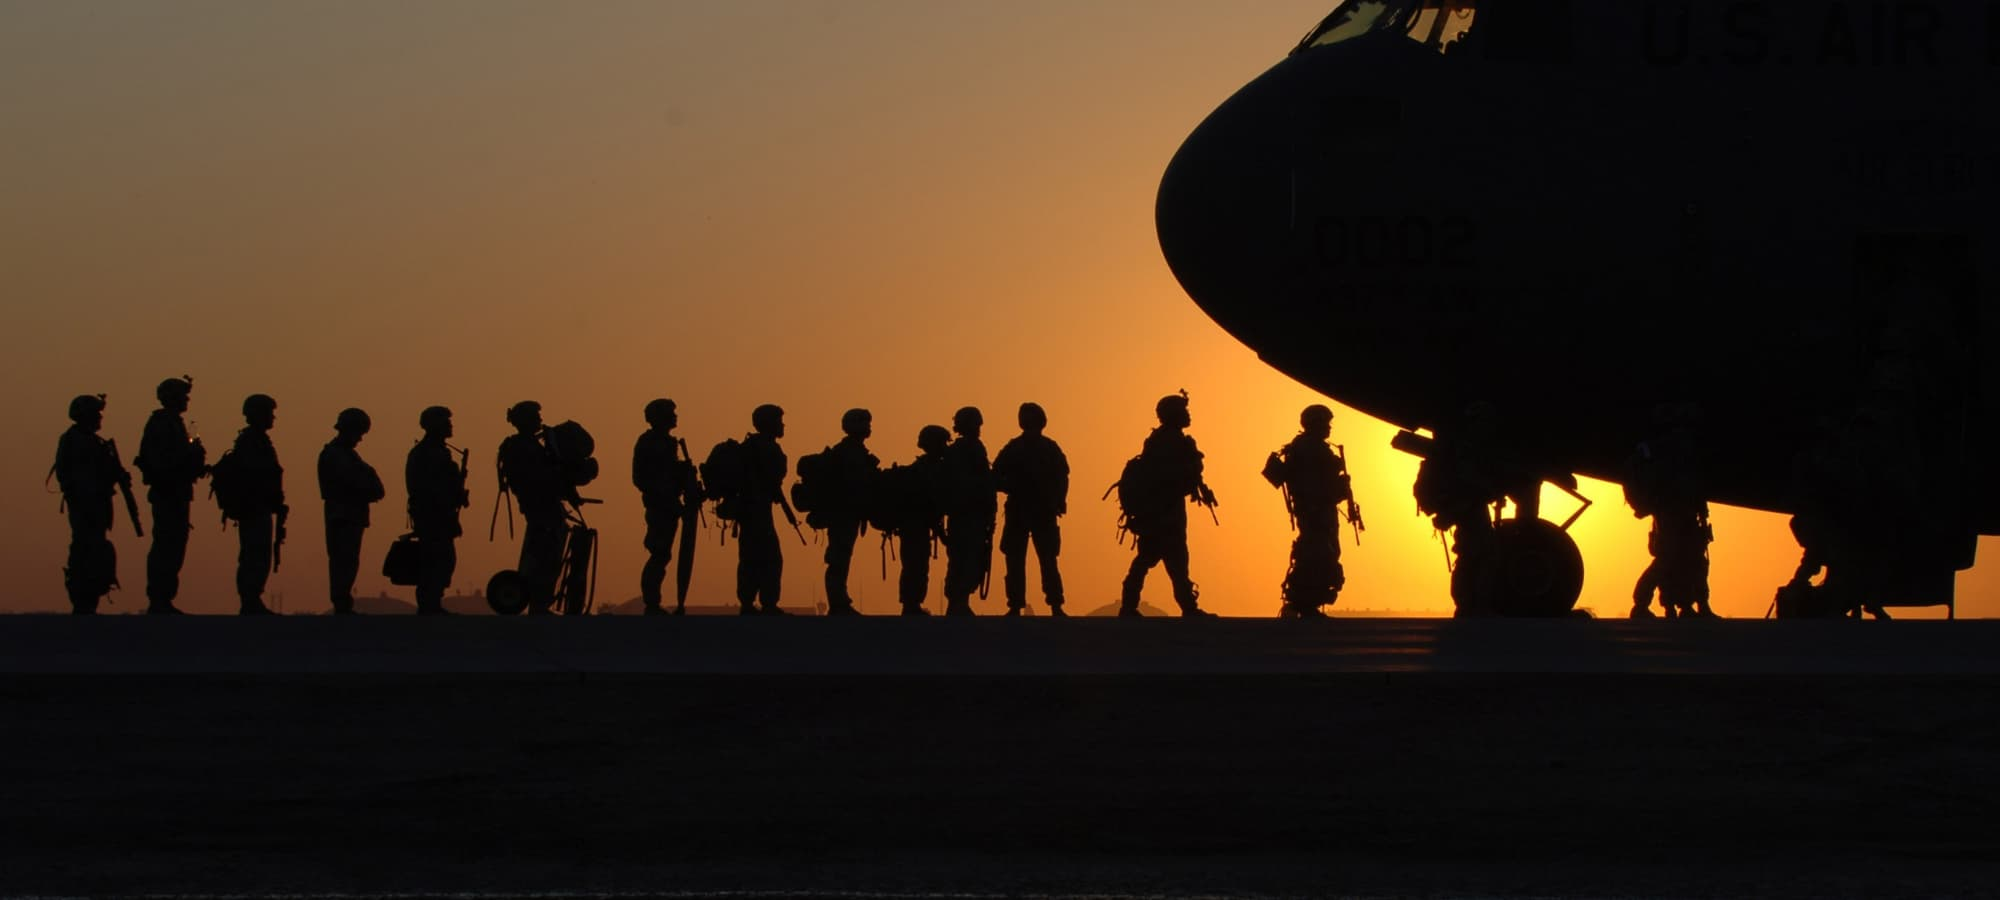 American soldiers boarding a plane at sunset